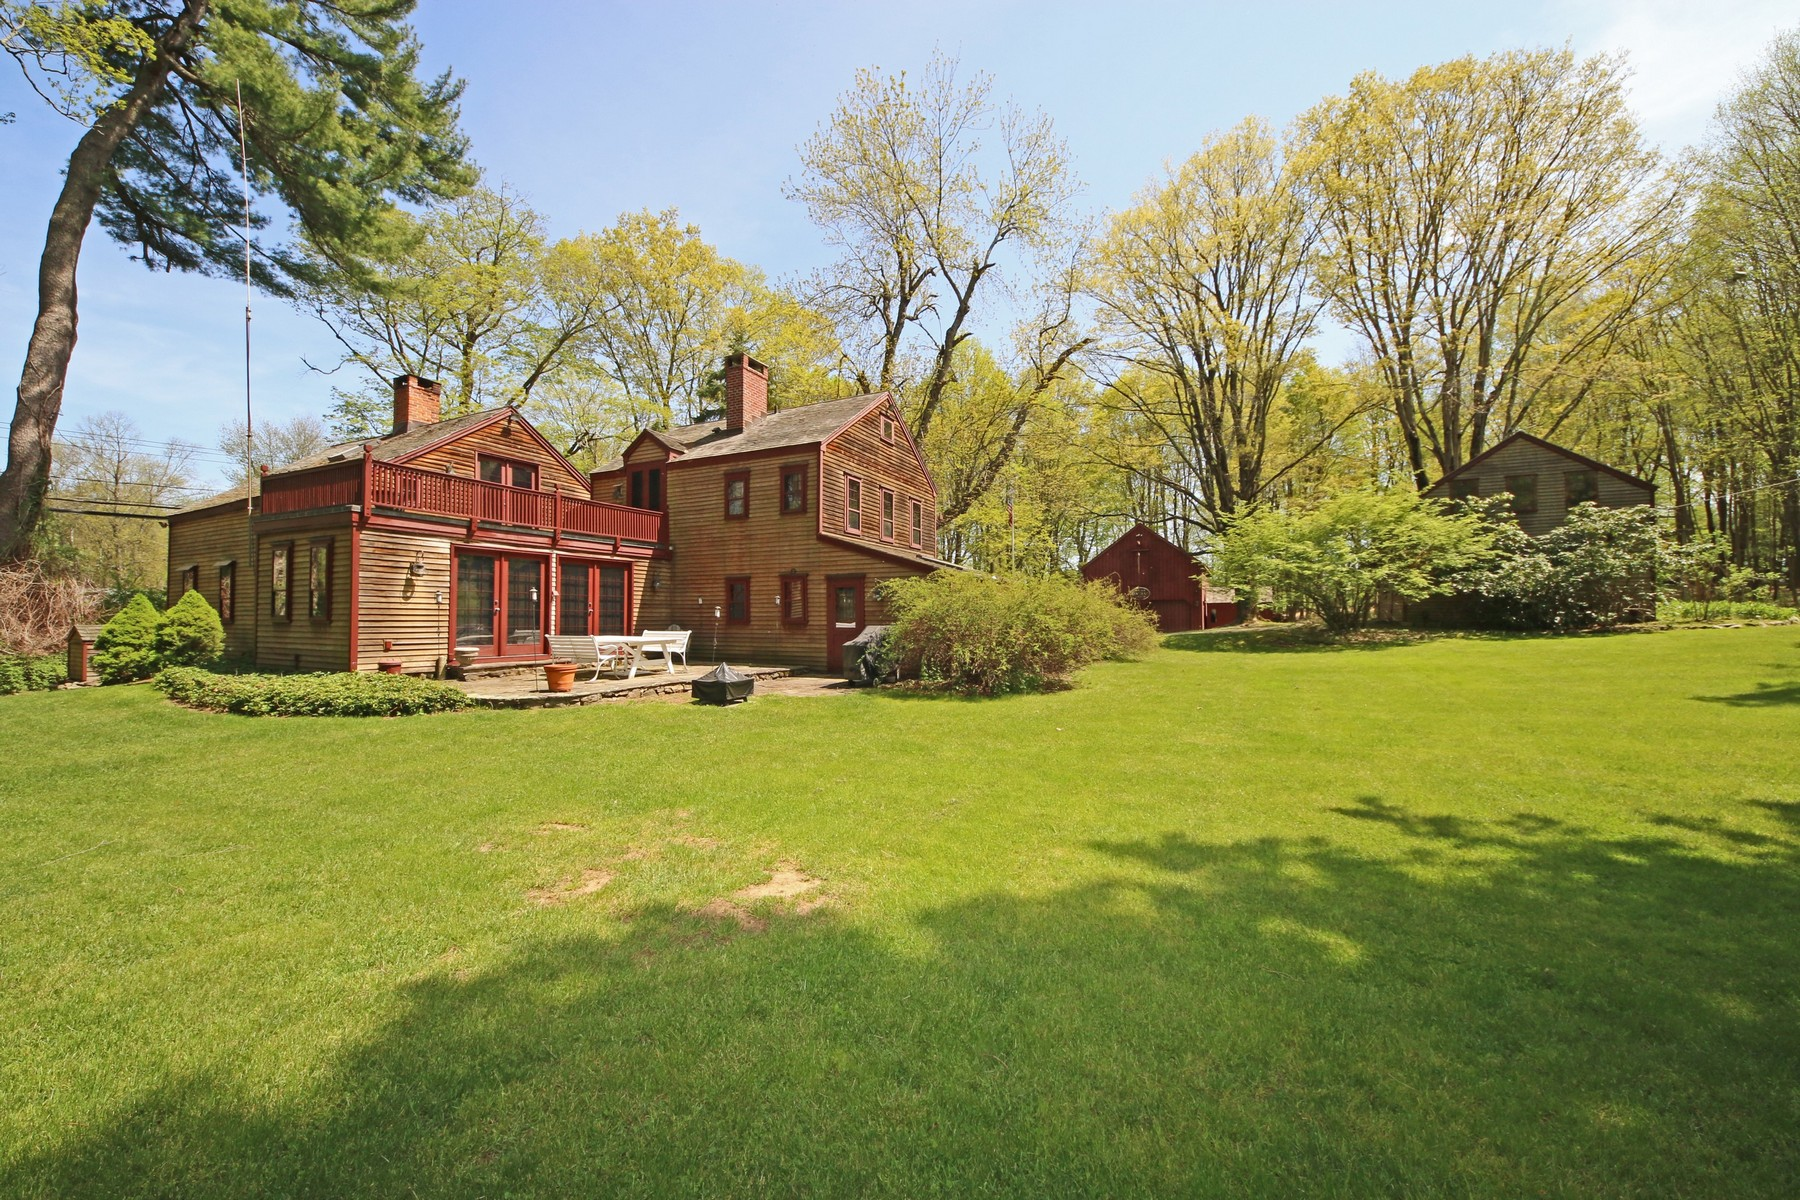 Single Family Home for Sale at Restored Antique 177 Lonetown Road Redding, Connecticut, 06896 United States